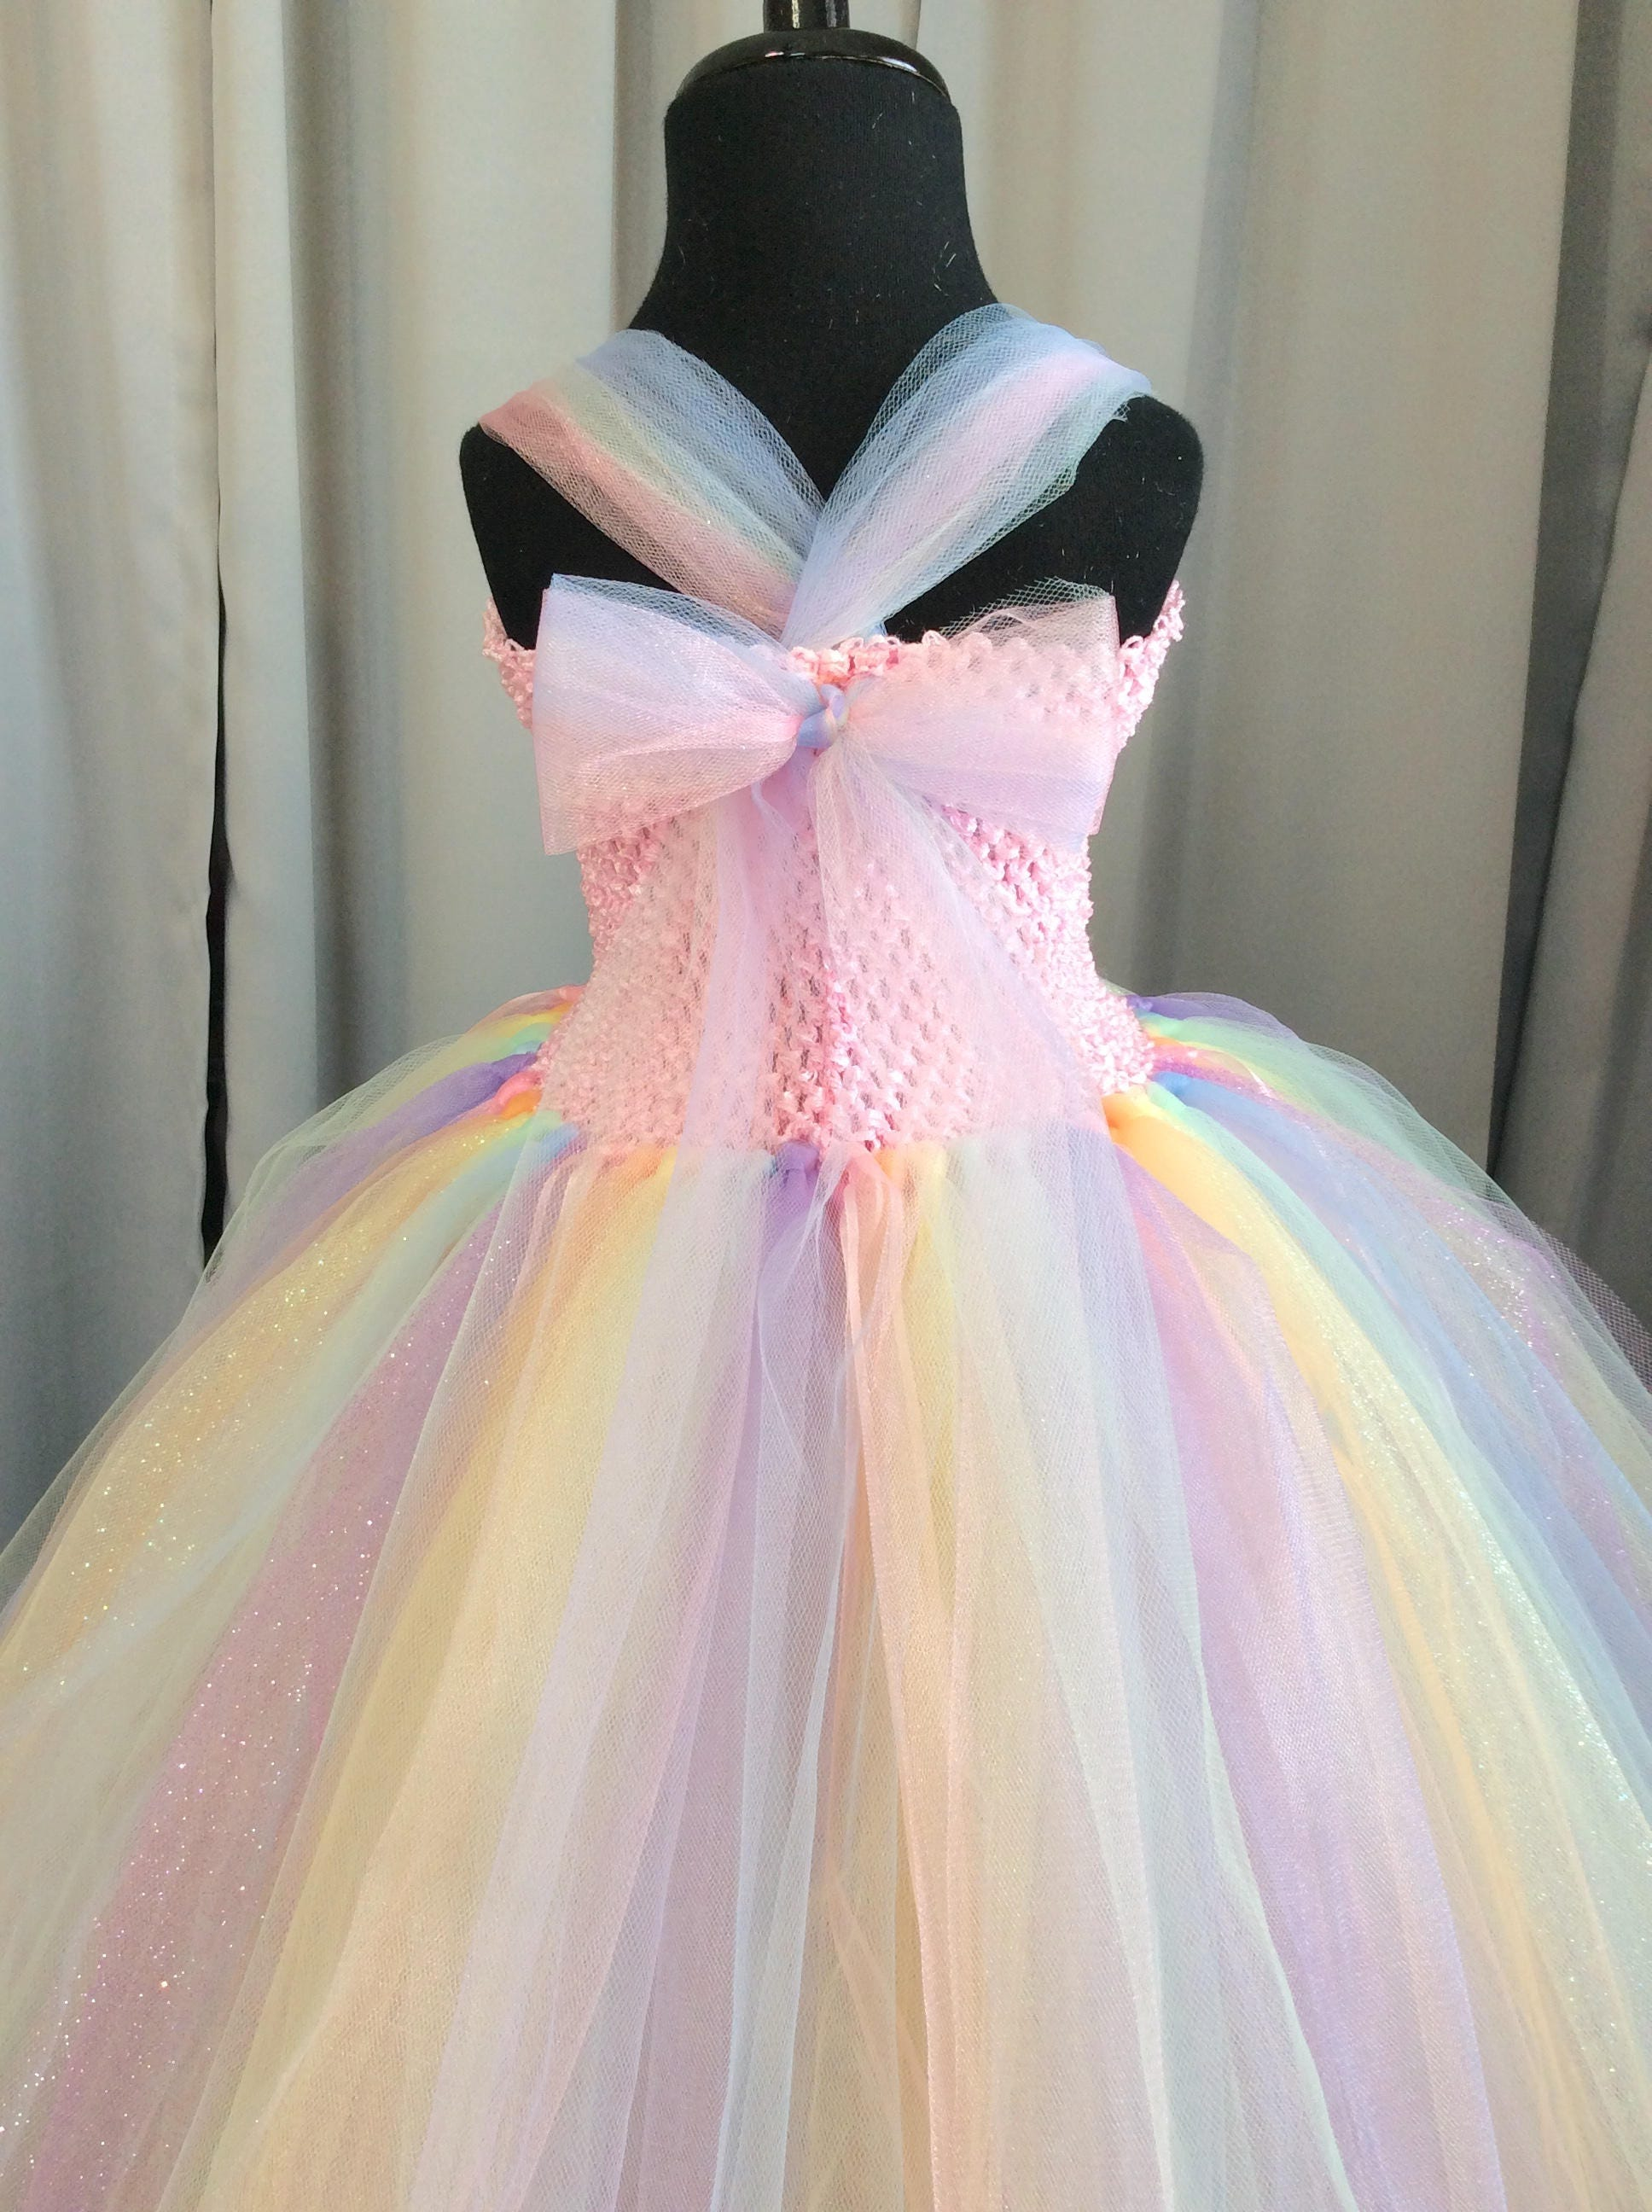 03b455ae87 Pastel rainbow princess tutu dress, tutu dress for girls, princess dresses  for girls, birthday dress, princess dress up, dresses for girls